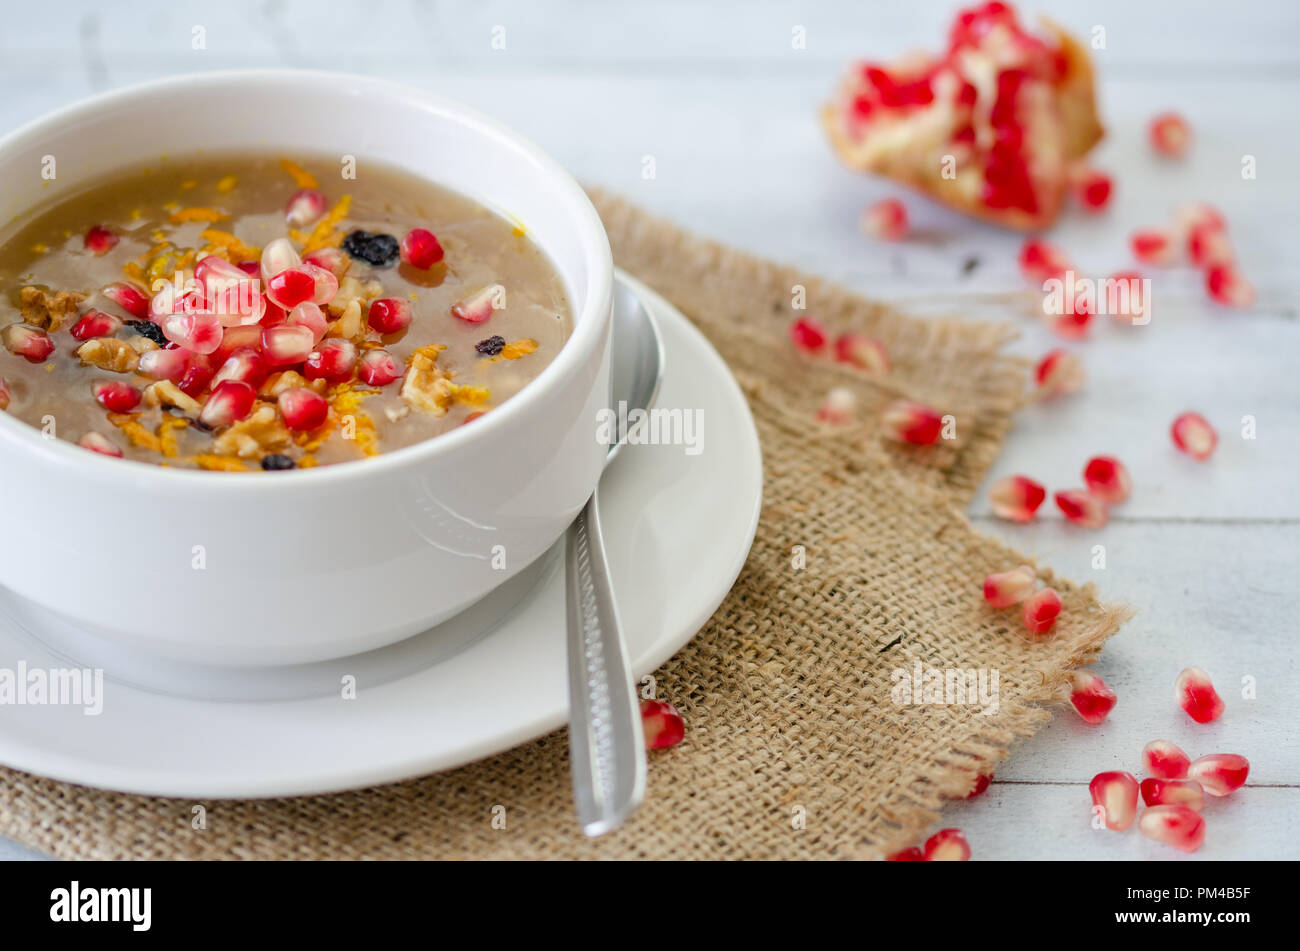 Noah's pudding in white bowl. The dried fruits, legumes and cereals are made with wheat and sugar. It is decorated with walnut, dried fruit and pomegr - Stock Image